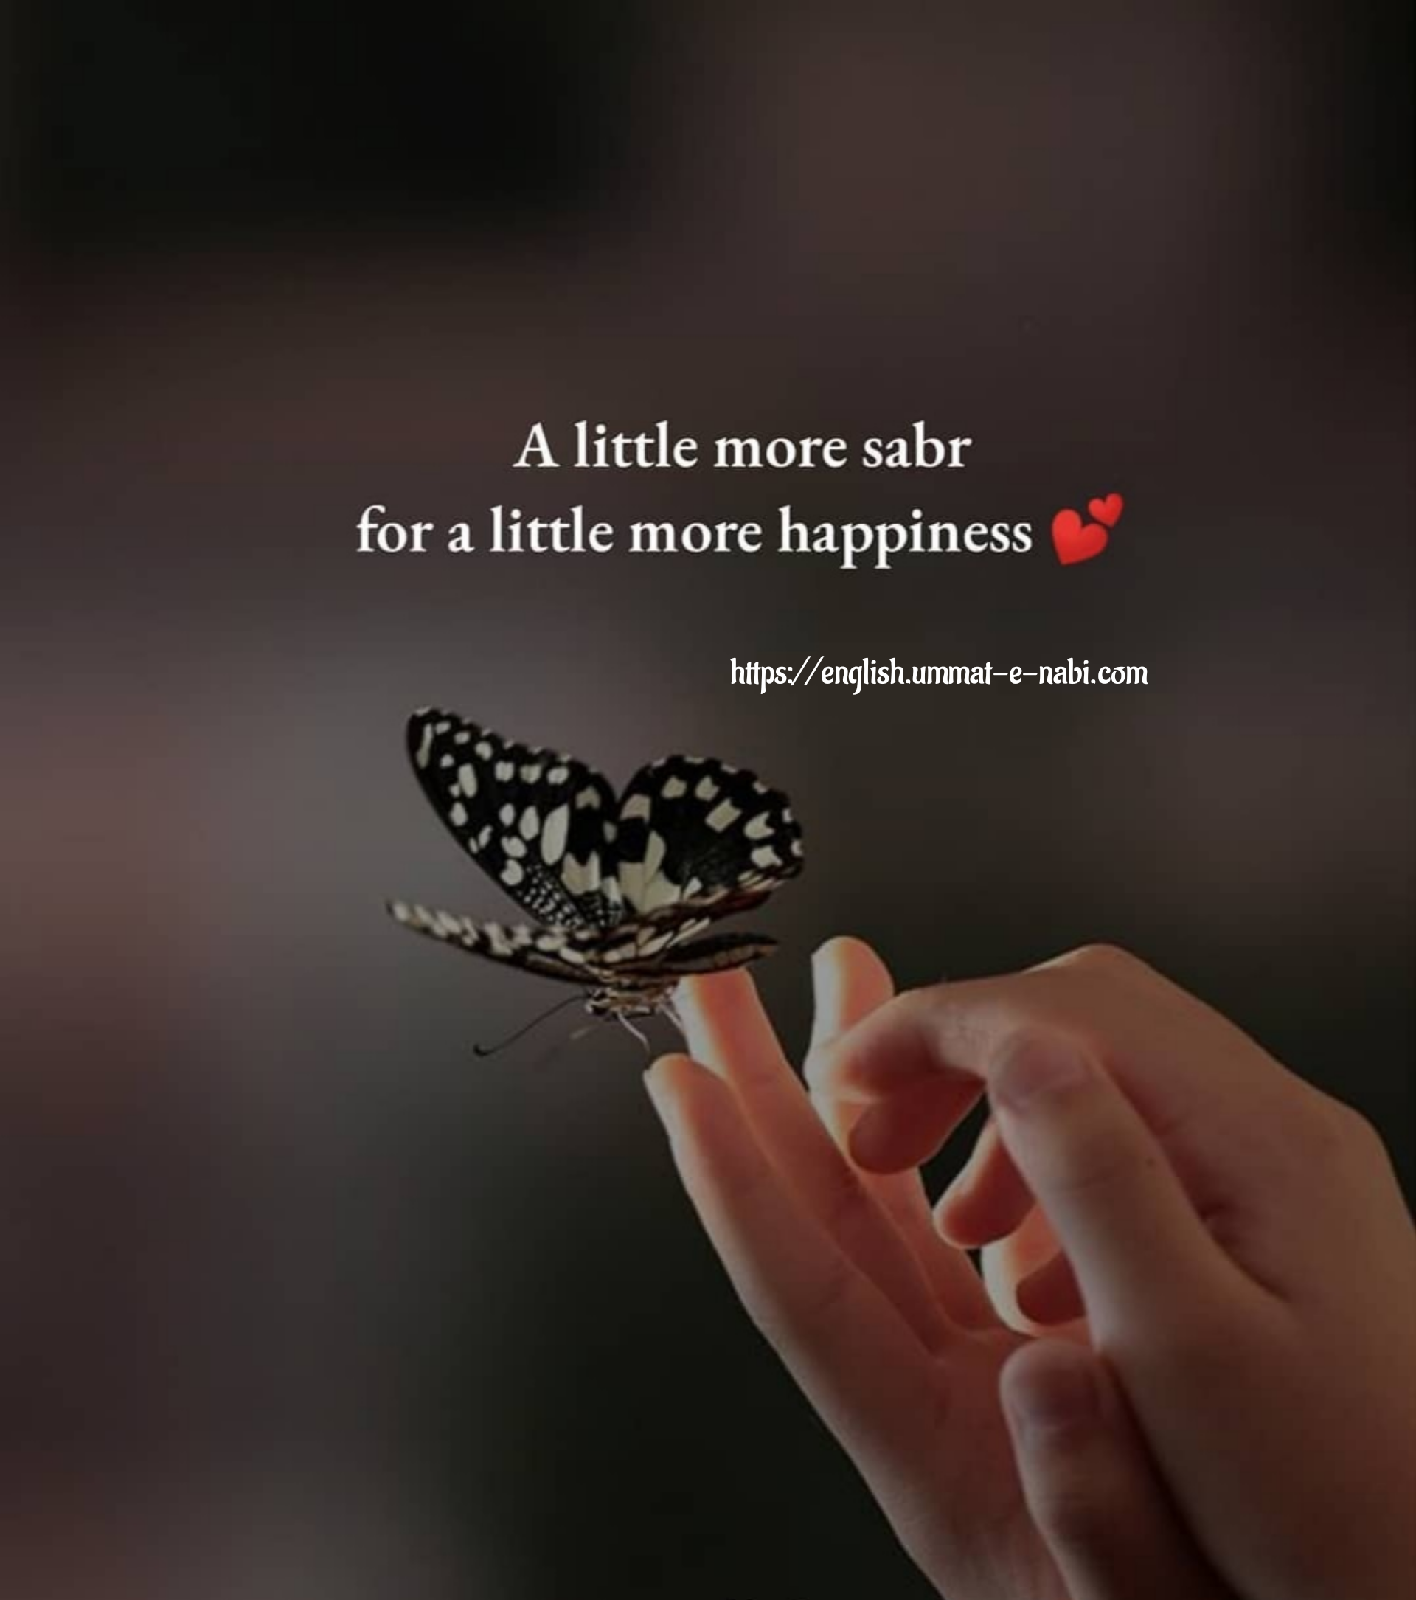 For More Happiness Islamic Qoutes Hd Images English Beautiful Quotes About Allah Islamic Inspirational Quotes Best Islamic Quotes